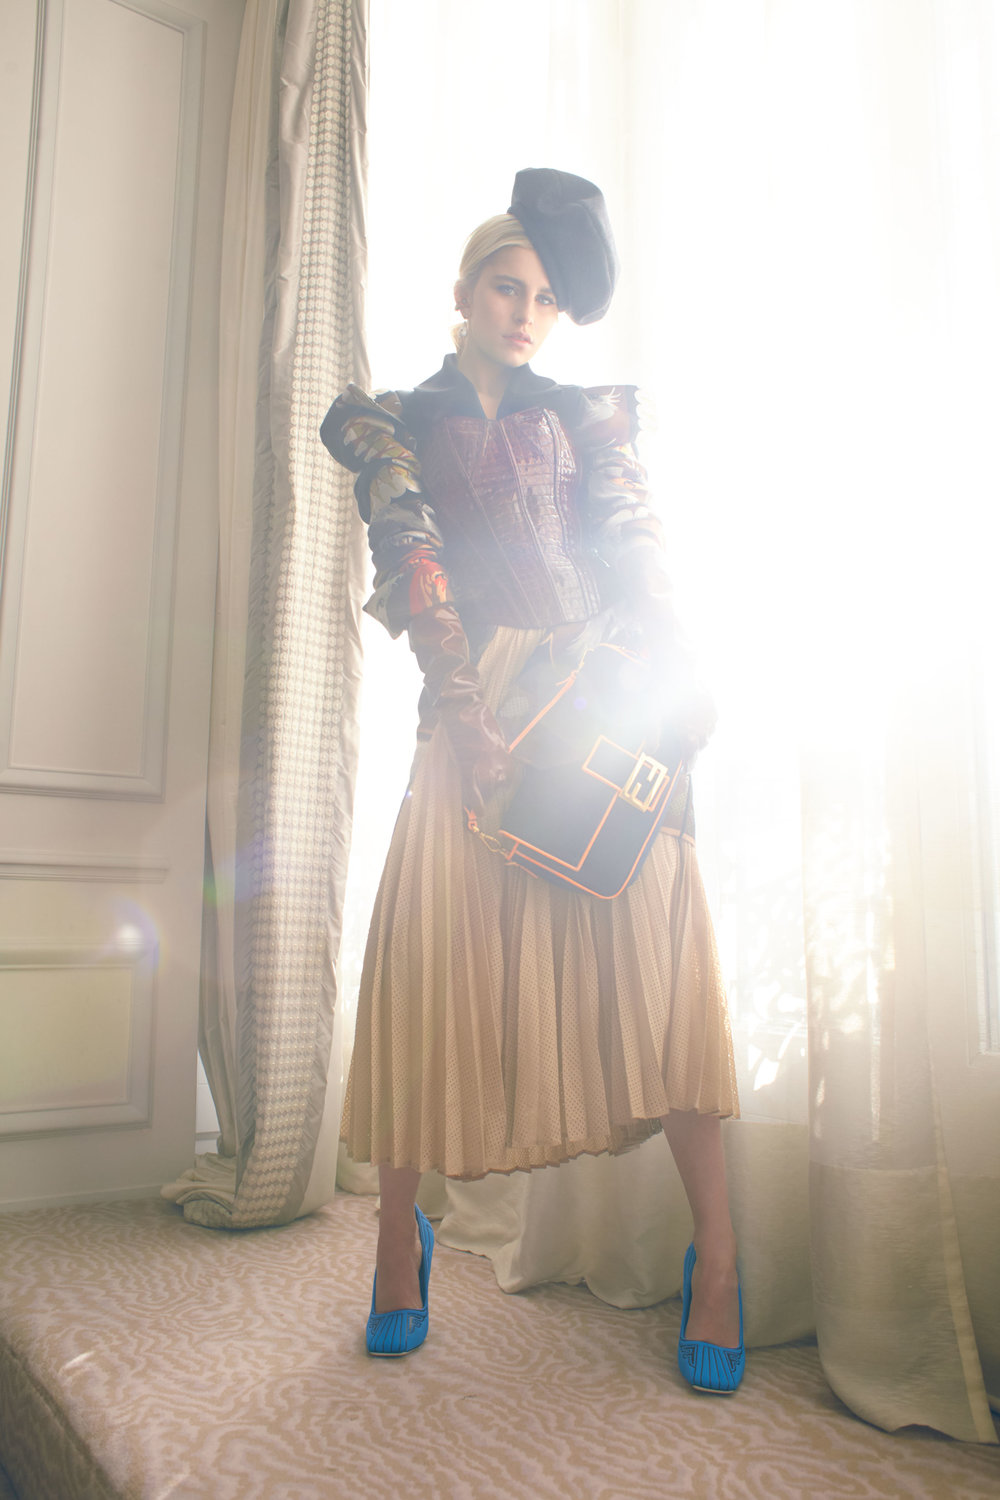 FENDI     coat, jacket, skirt, shoes, and baguette and stylist's own bustier and hat.